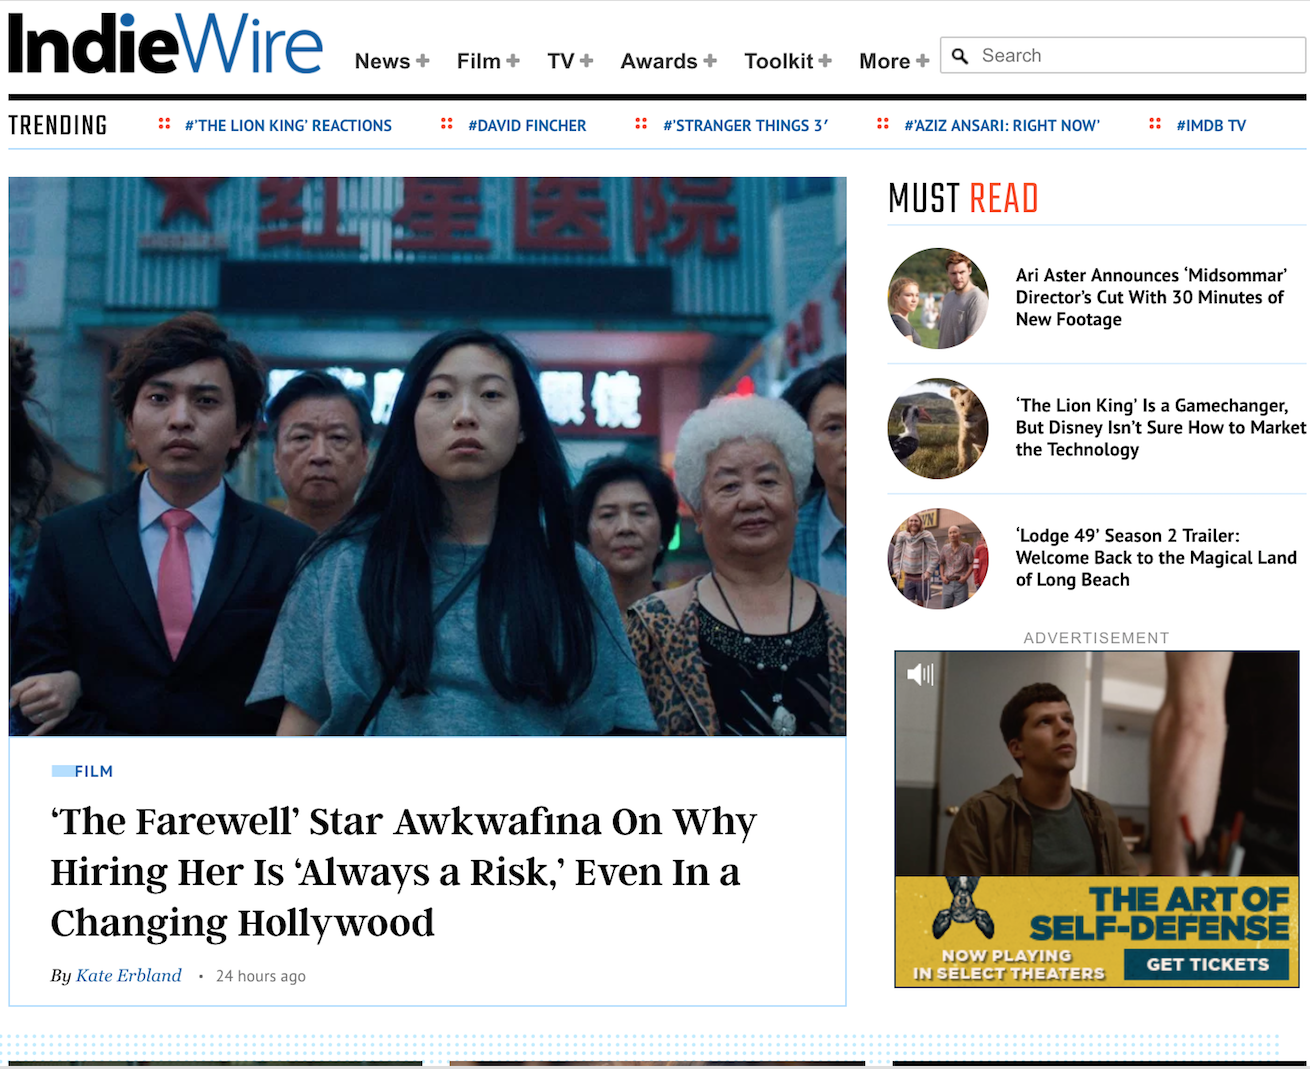 IndieWire Announces New Film and TV Hires, Hits Record